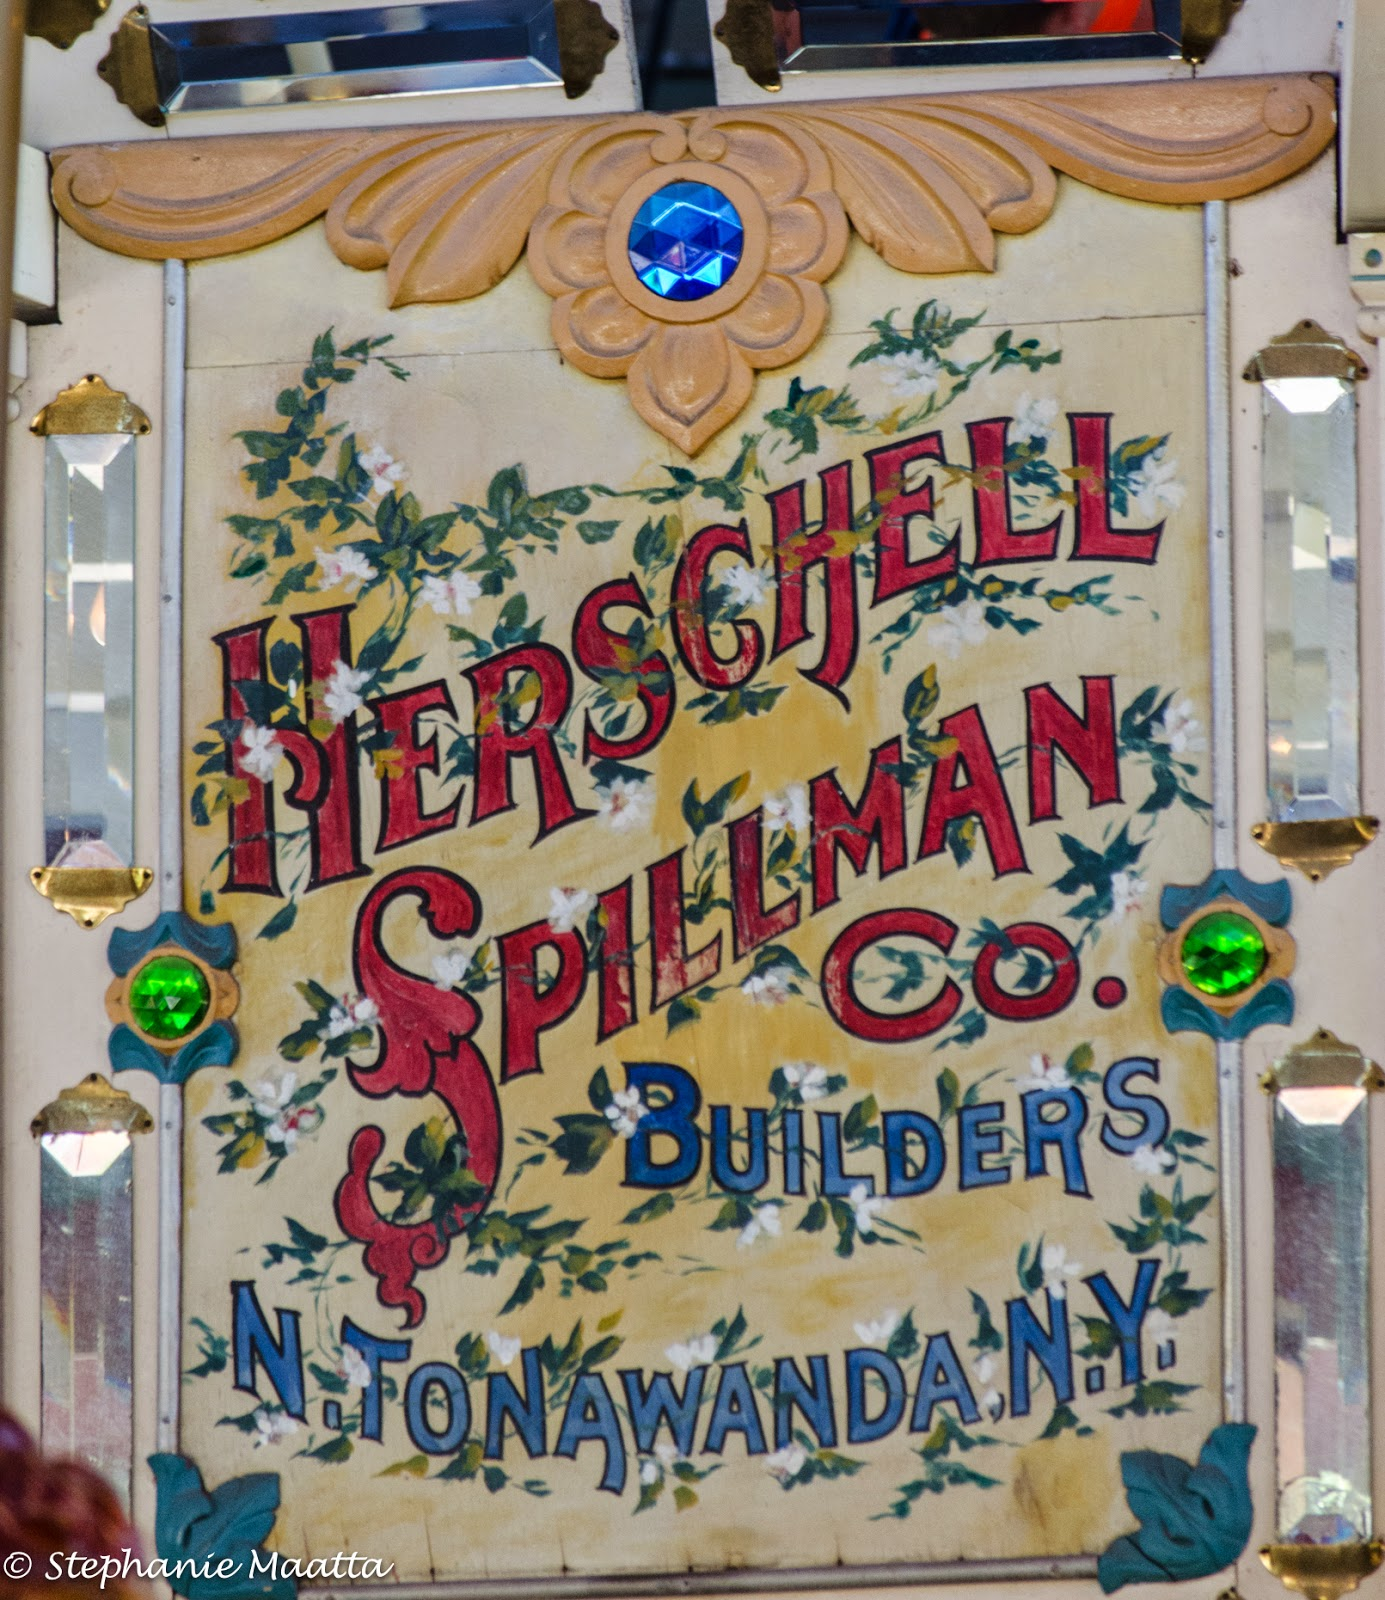 Herschell Spillman sign on carousel